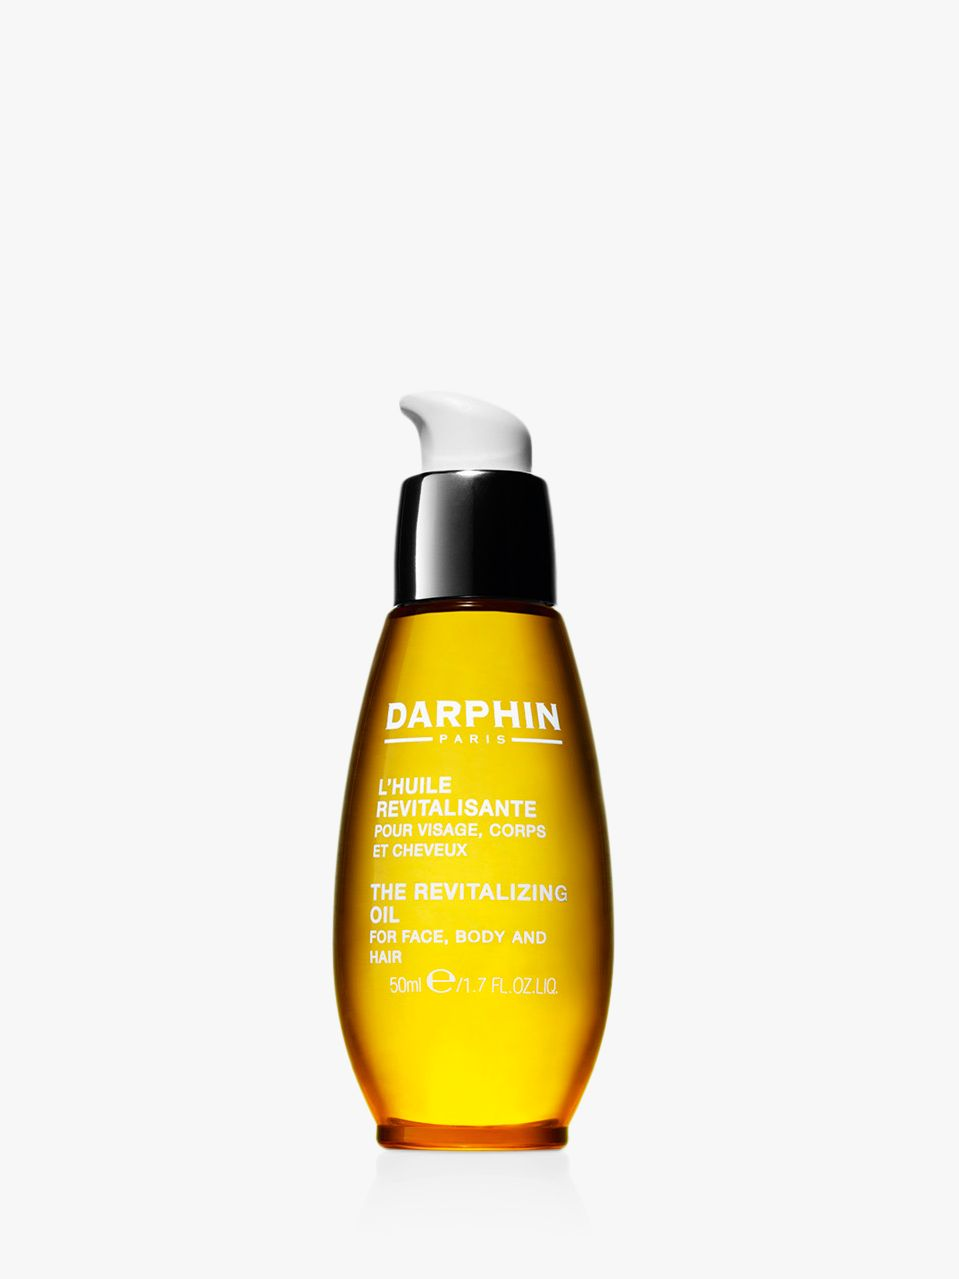 Darphin Darphin The Revitalizing Oil, 50ml